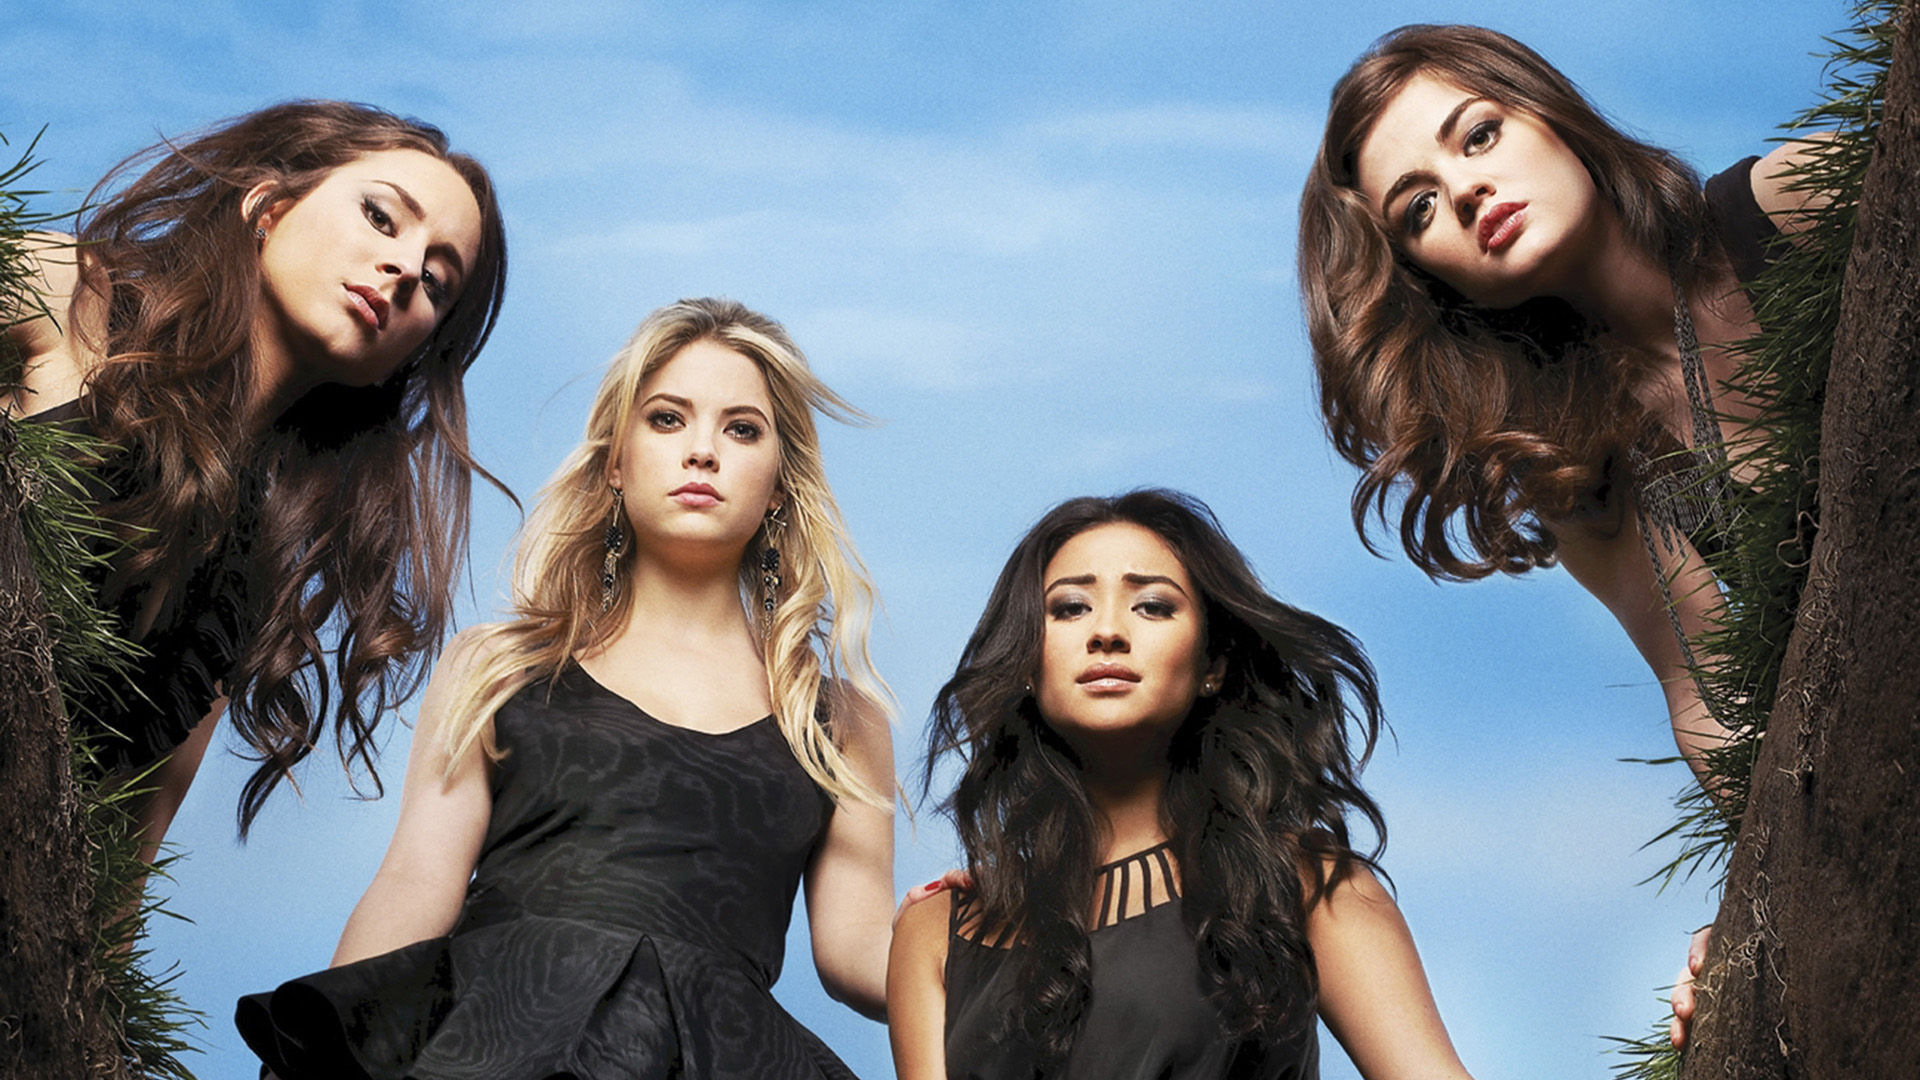 http://static.giga.de/wp-content/uploads/2015/04/pretty-little-liars1.jpeg